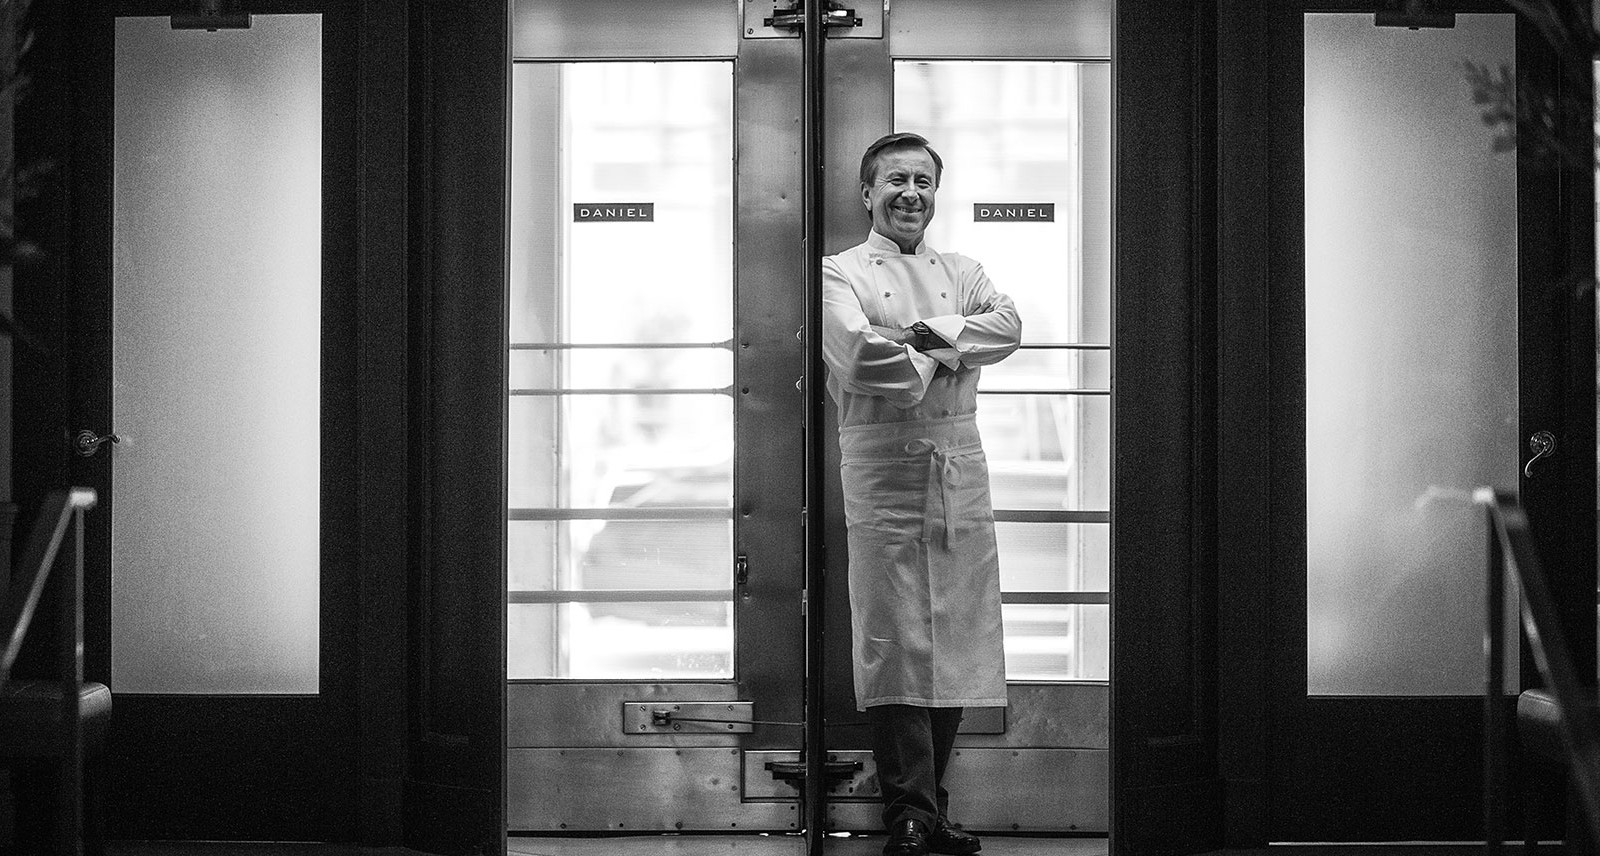 Inside Daniel Boulud's Culinary Empire